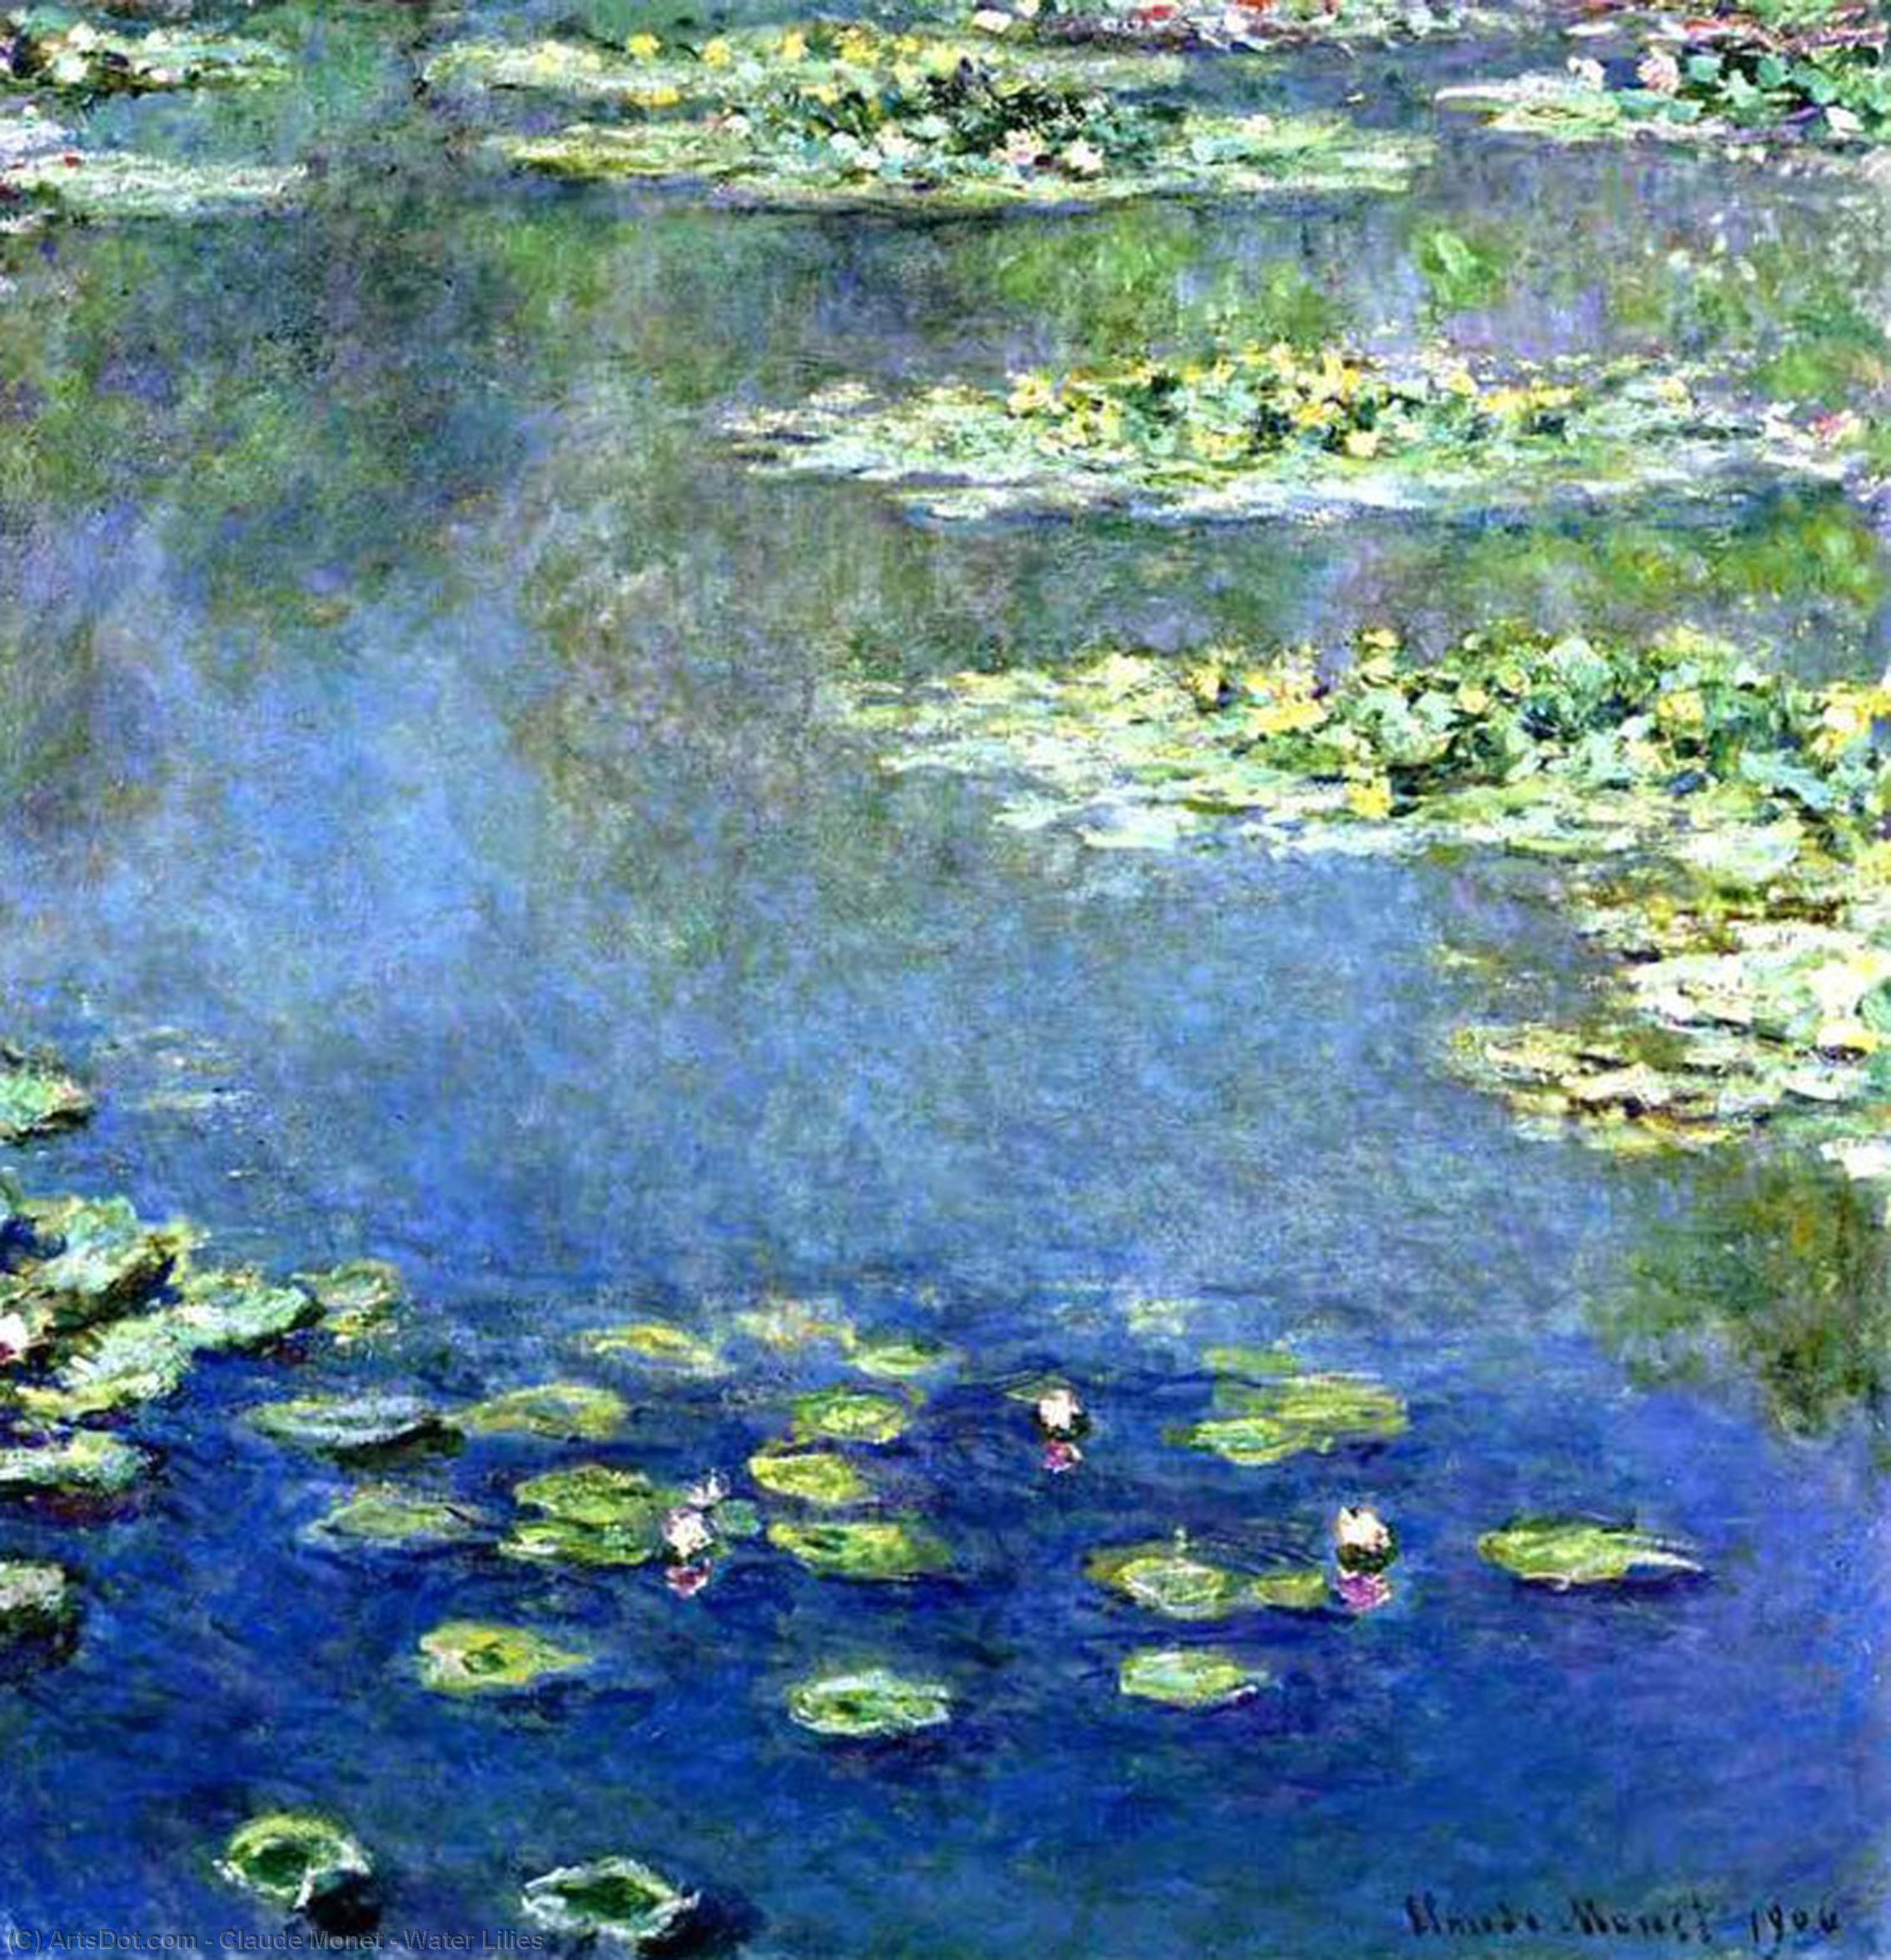 WikiOO.org - Encyclopedia of Fine Arts - Maleri, Artwork Claude Monet - Water Lilies